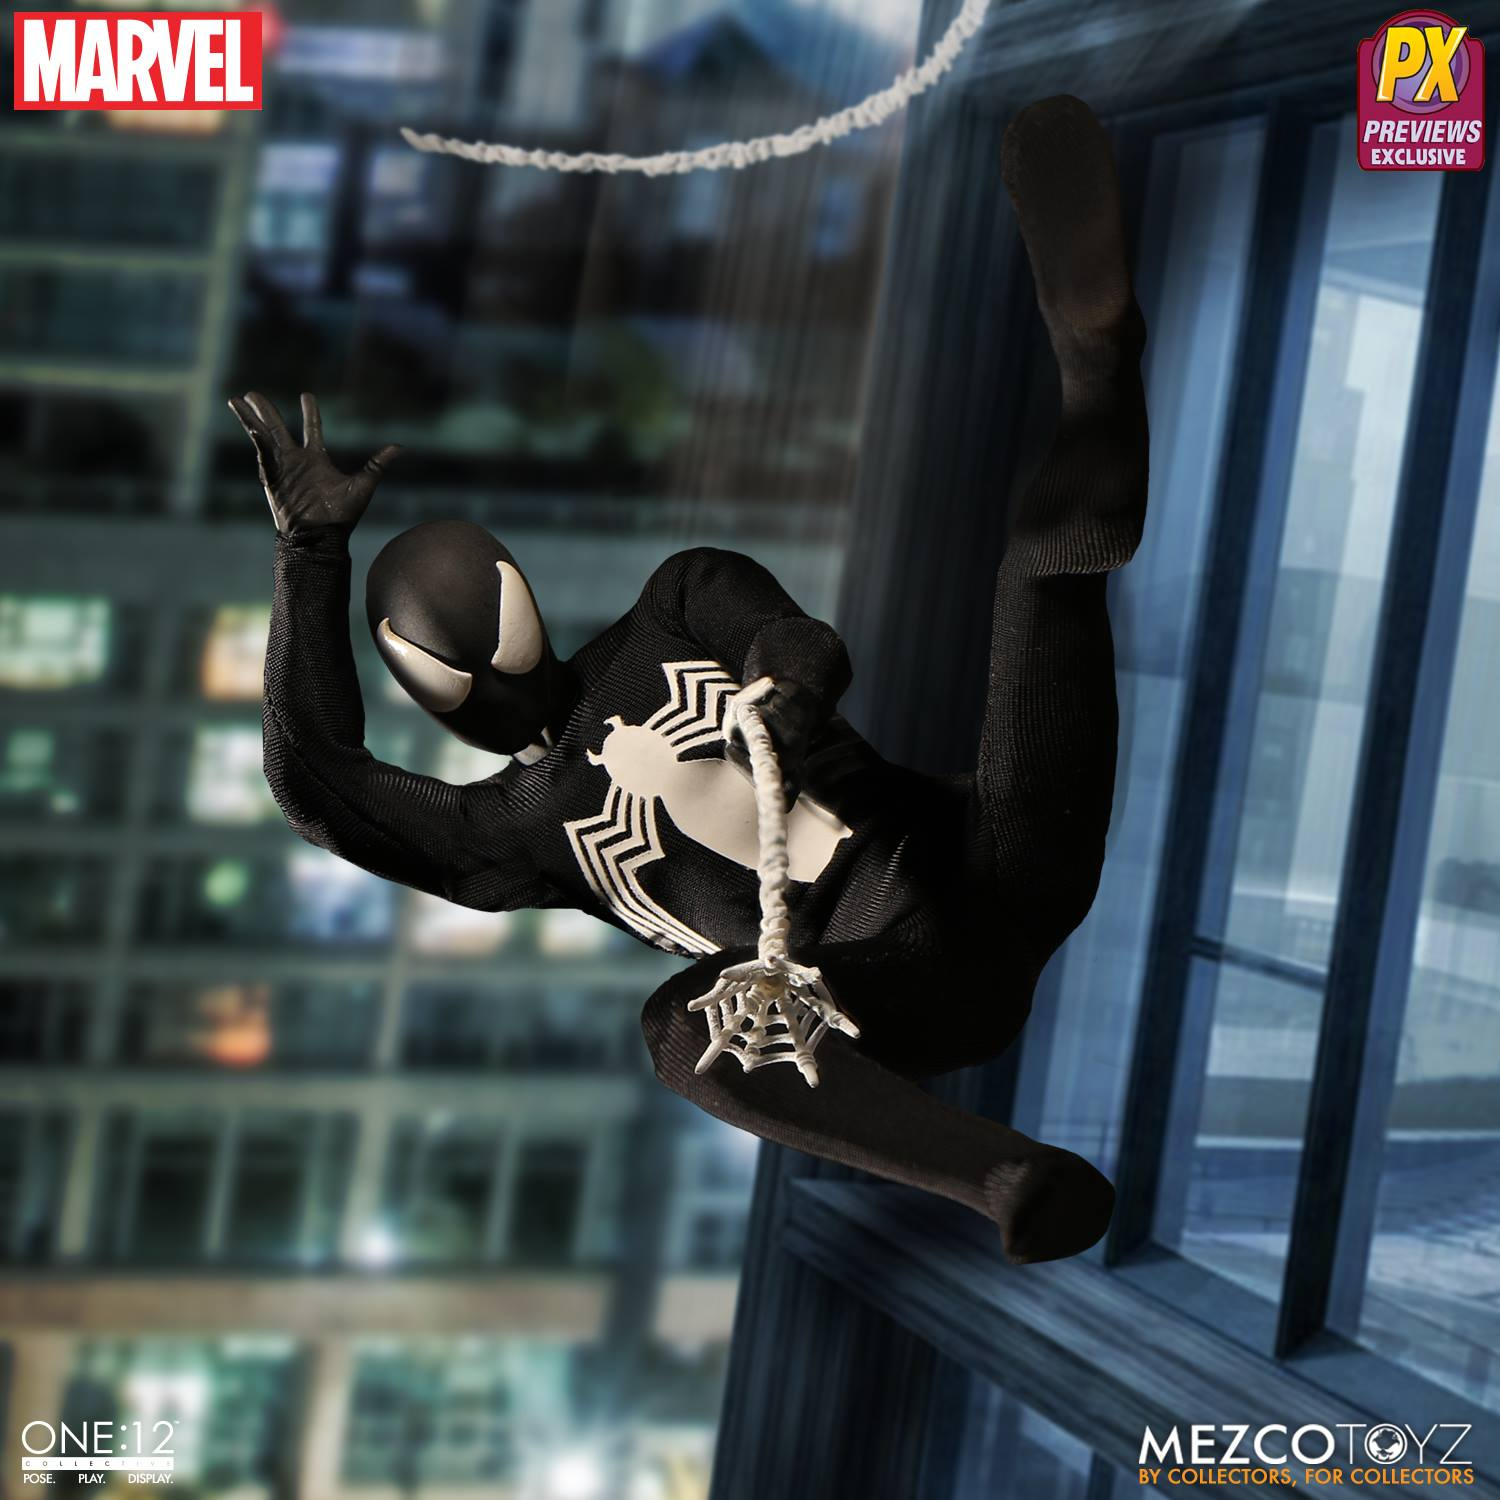 Mezco Symbiote Spider-Man ONE 12 Collective Figure Web-Slinging